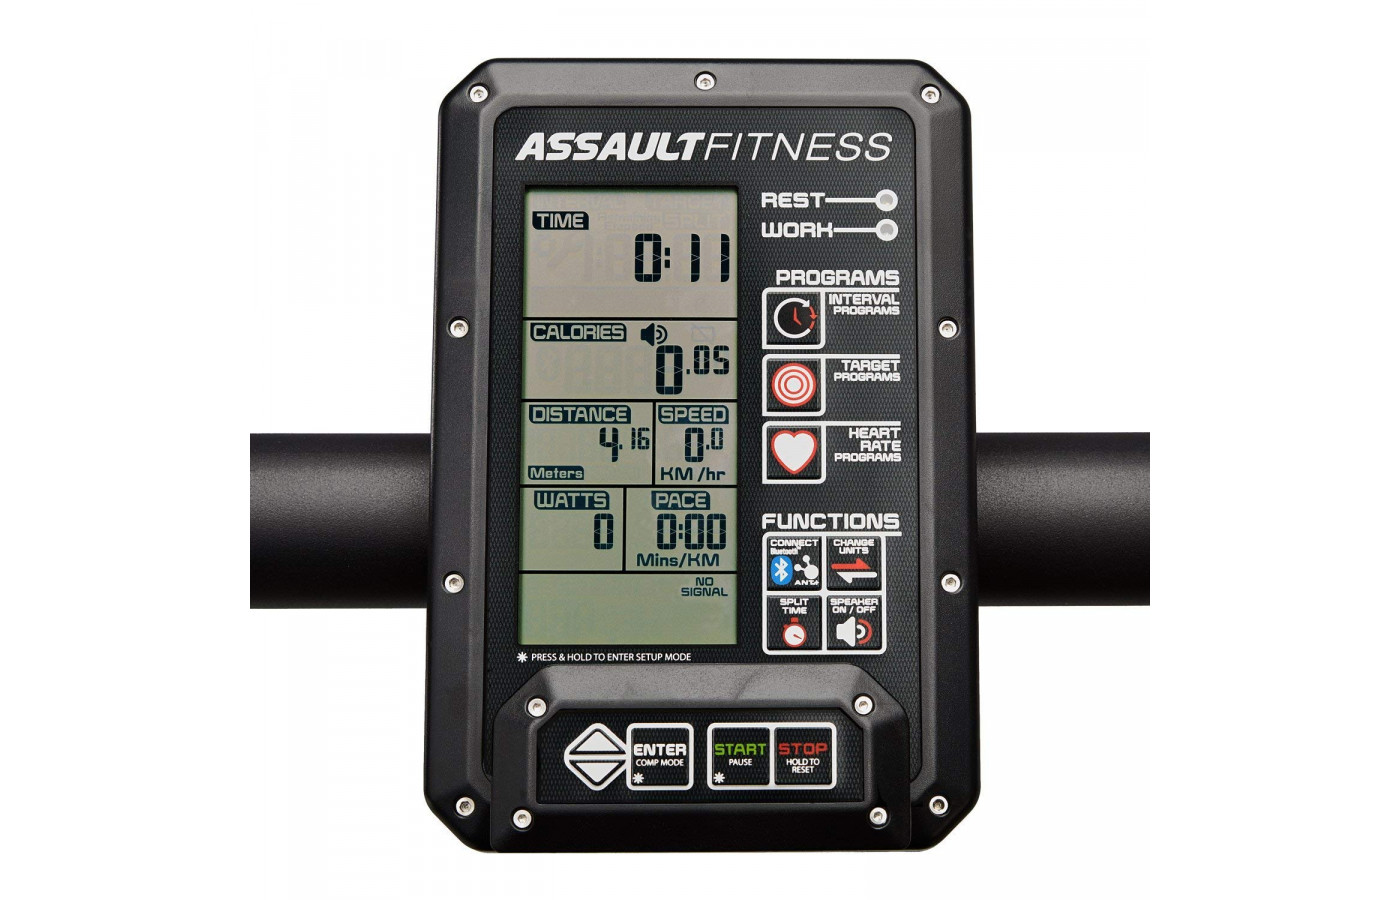 assault fitness console